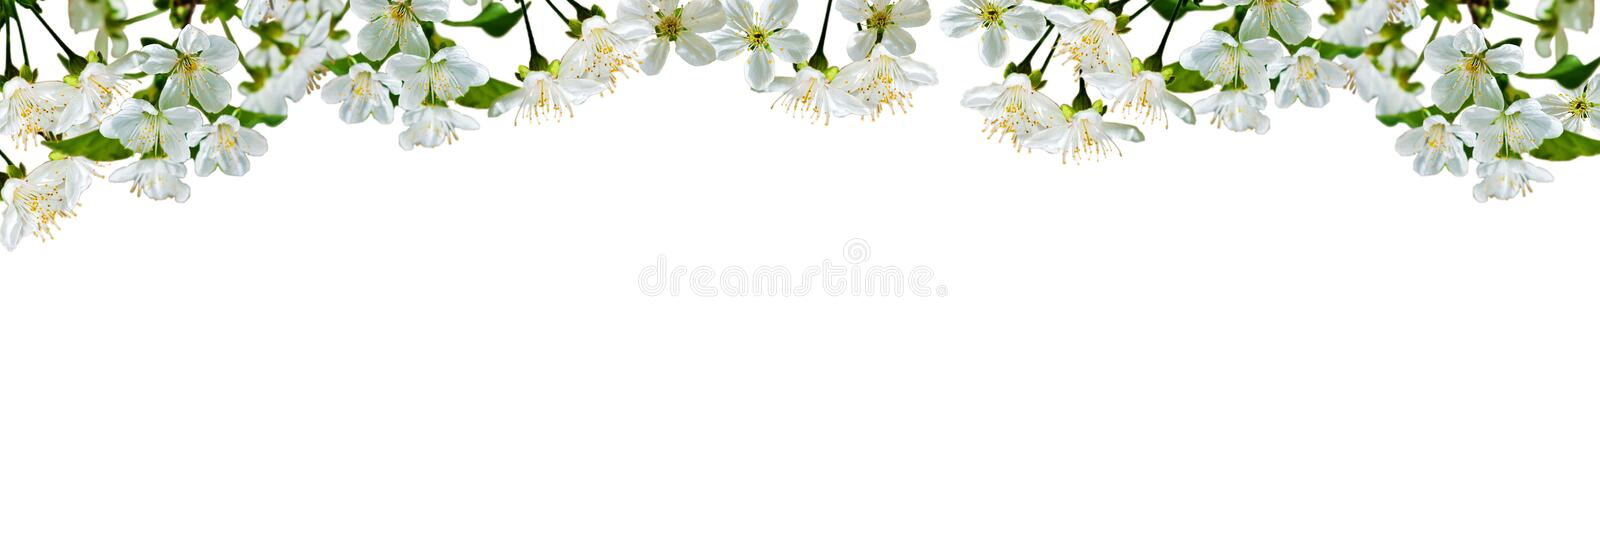 Natural background with cherry flowers and leaves. Cherry flowers and leaves isolated on white background. Natural background. Isolation is on a transparent stock image